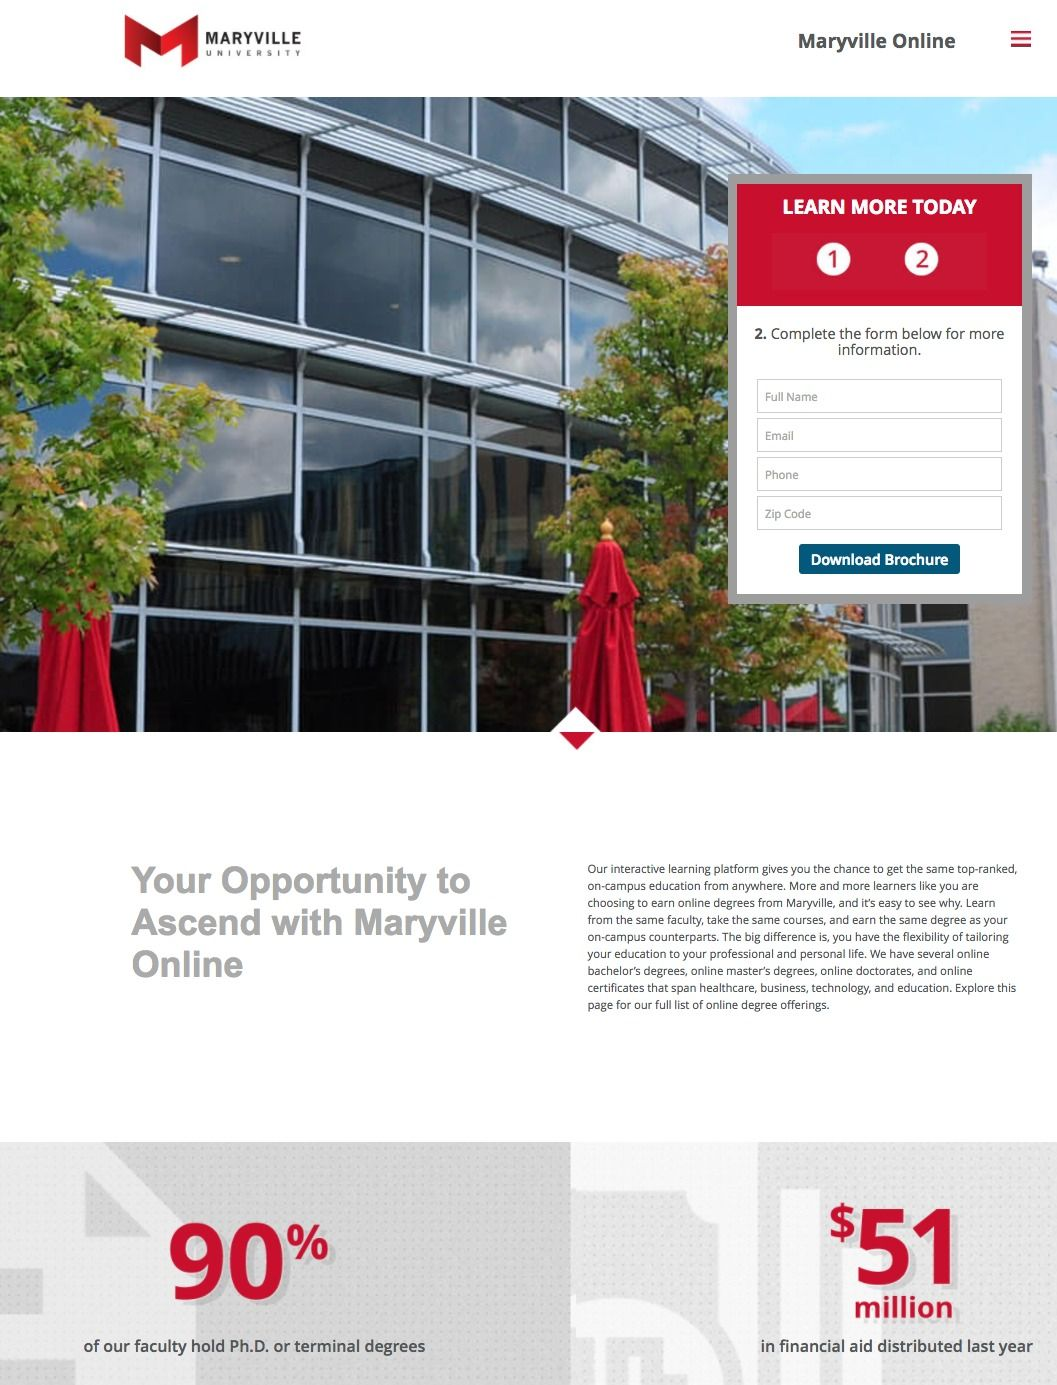 This picture shows marketers how Maryville University uses an education landing page to generate new leads and student sign ups.